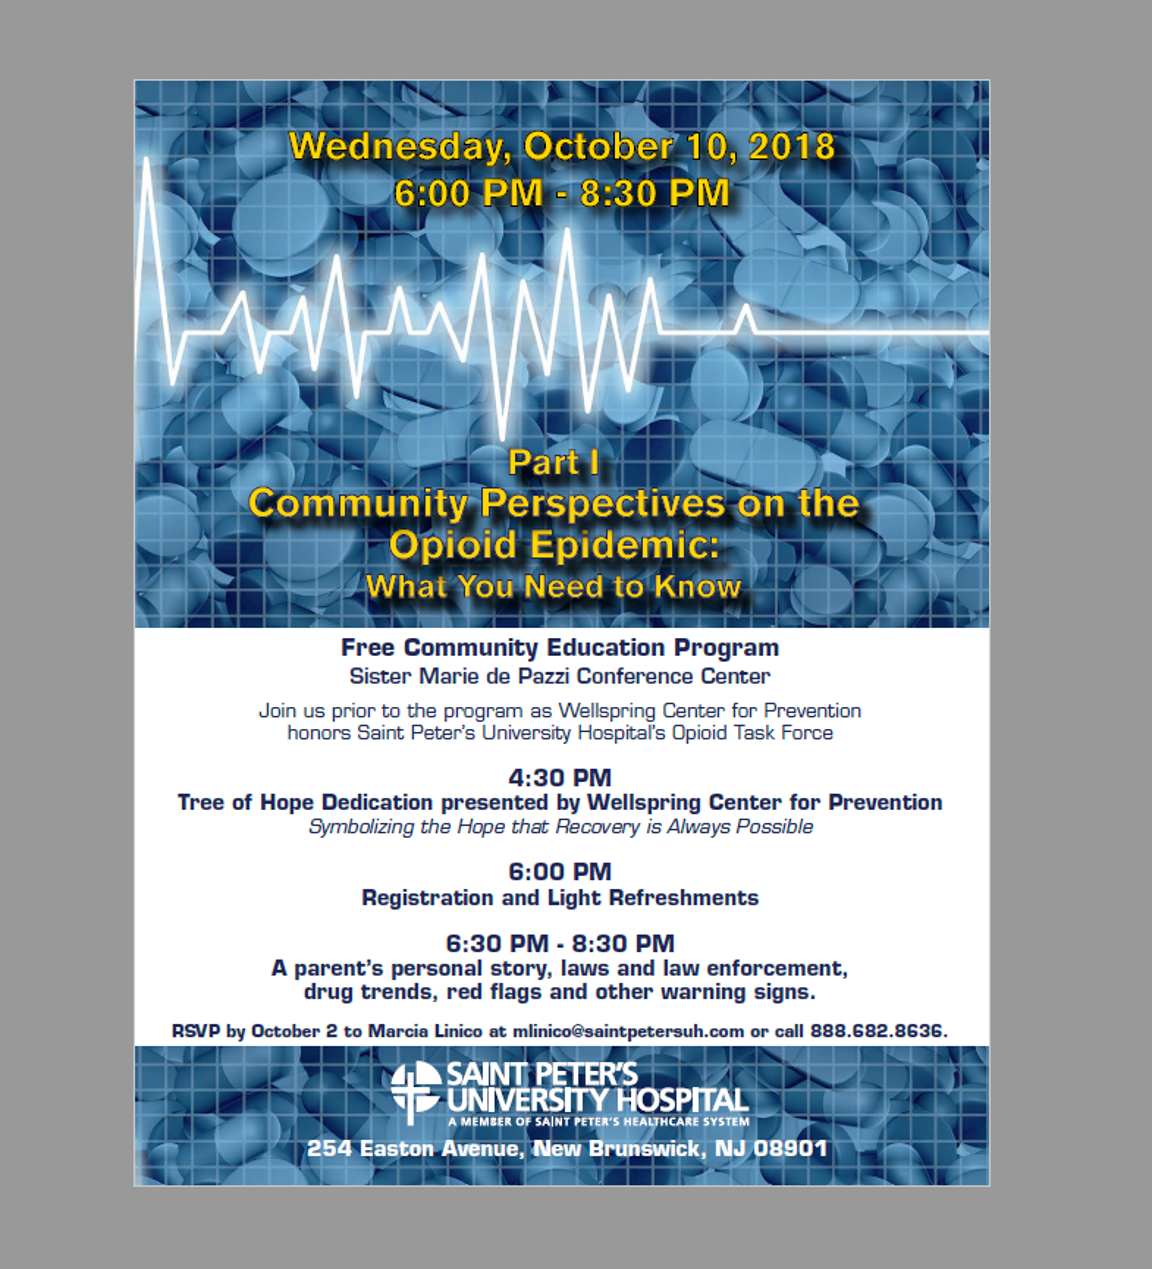 Community Perspectives on the Opioid Epidemic